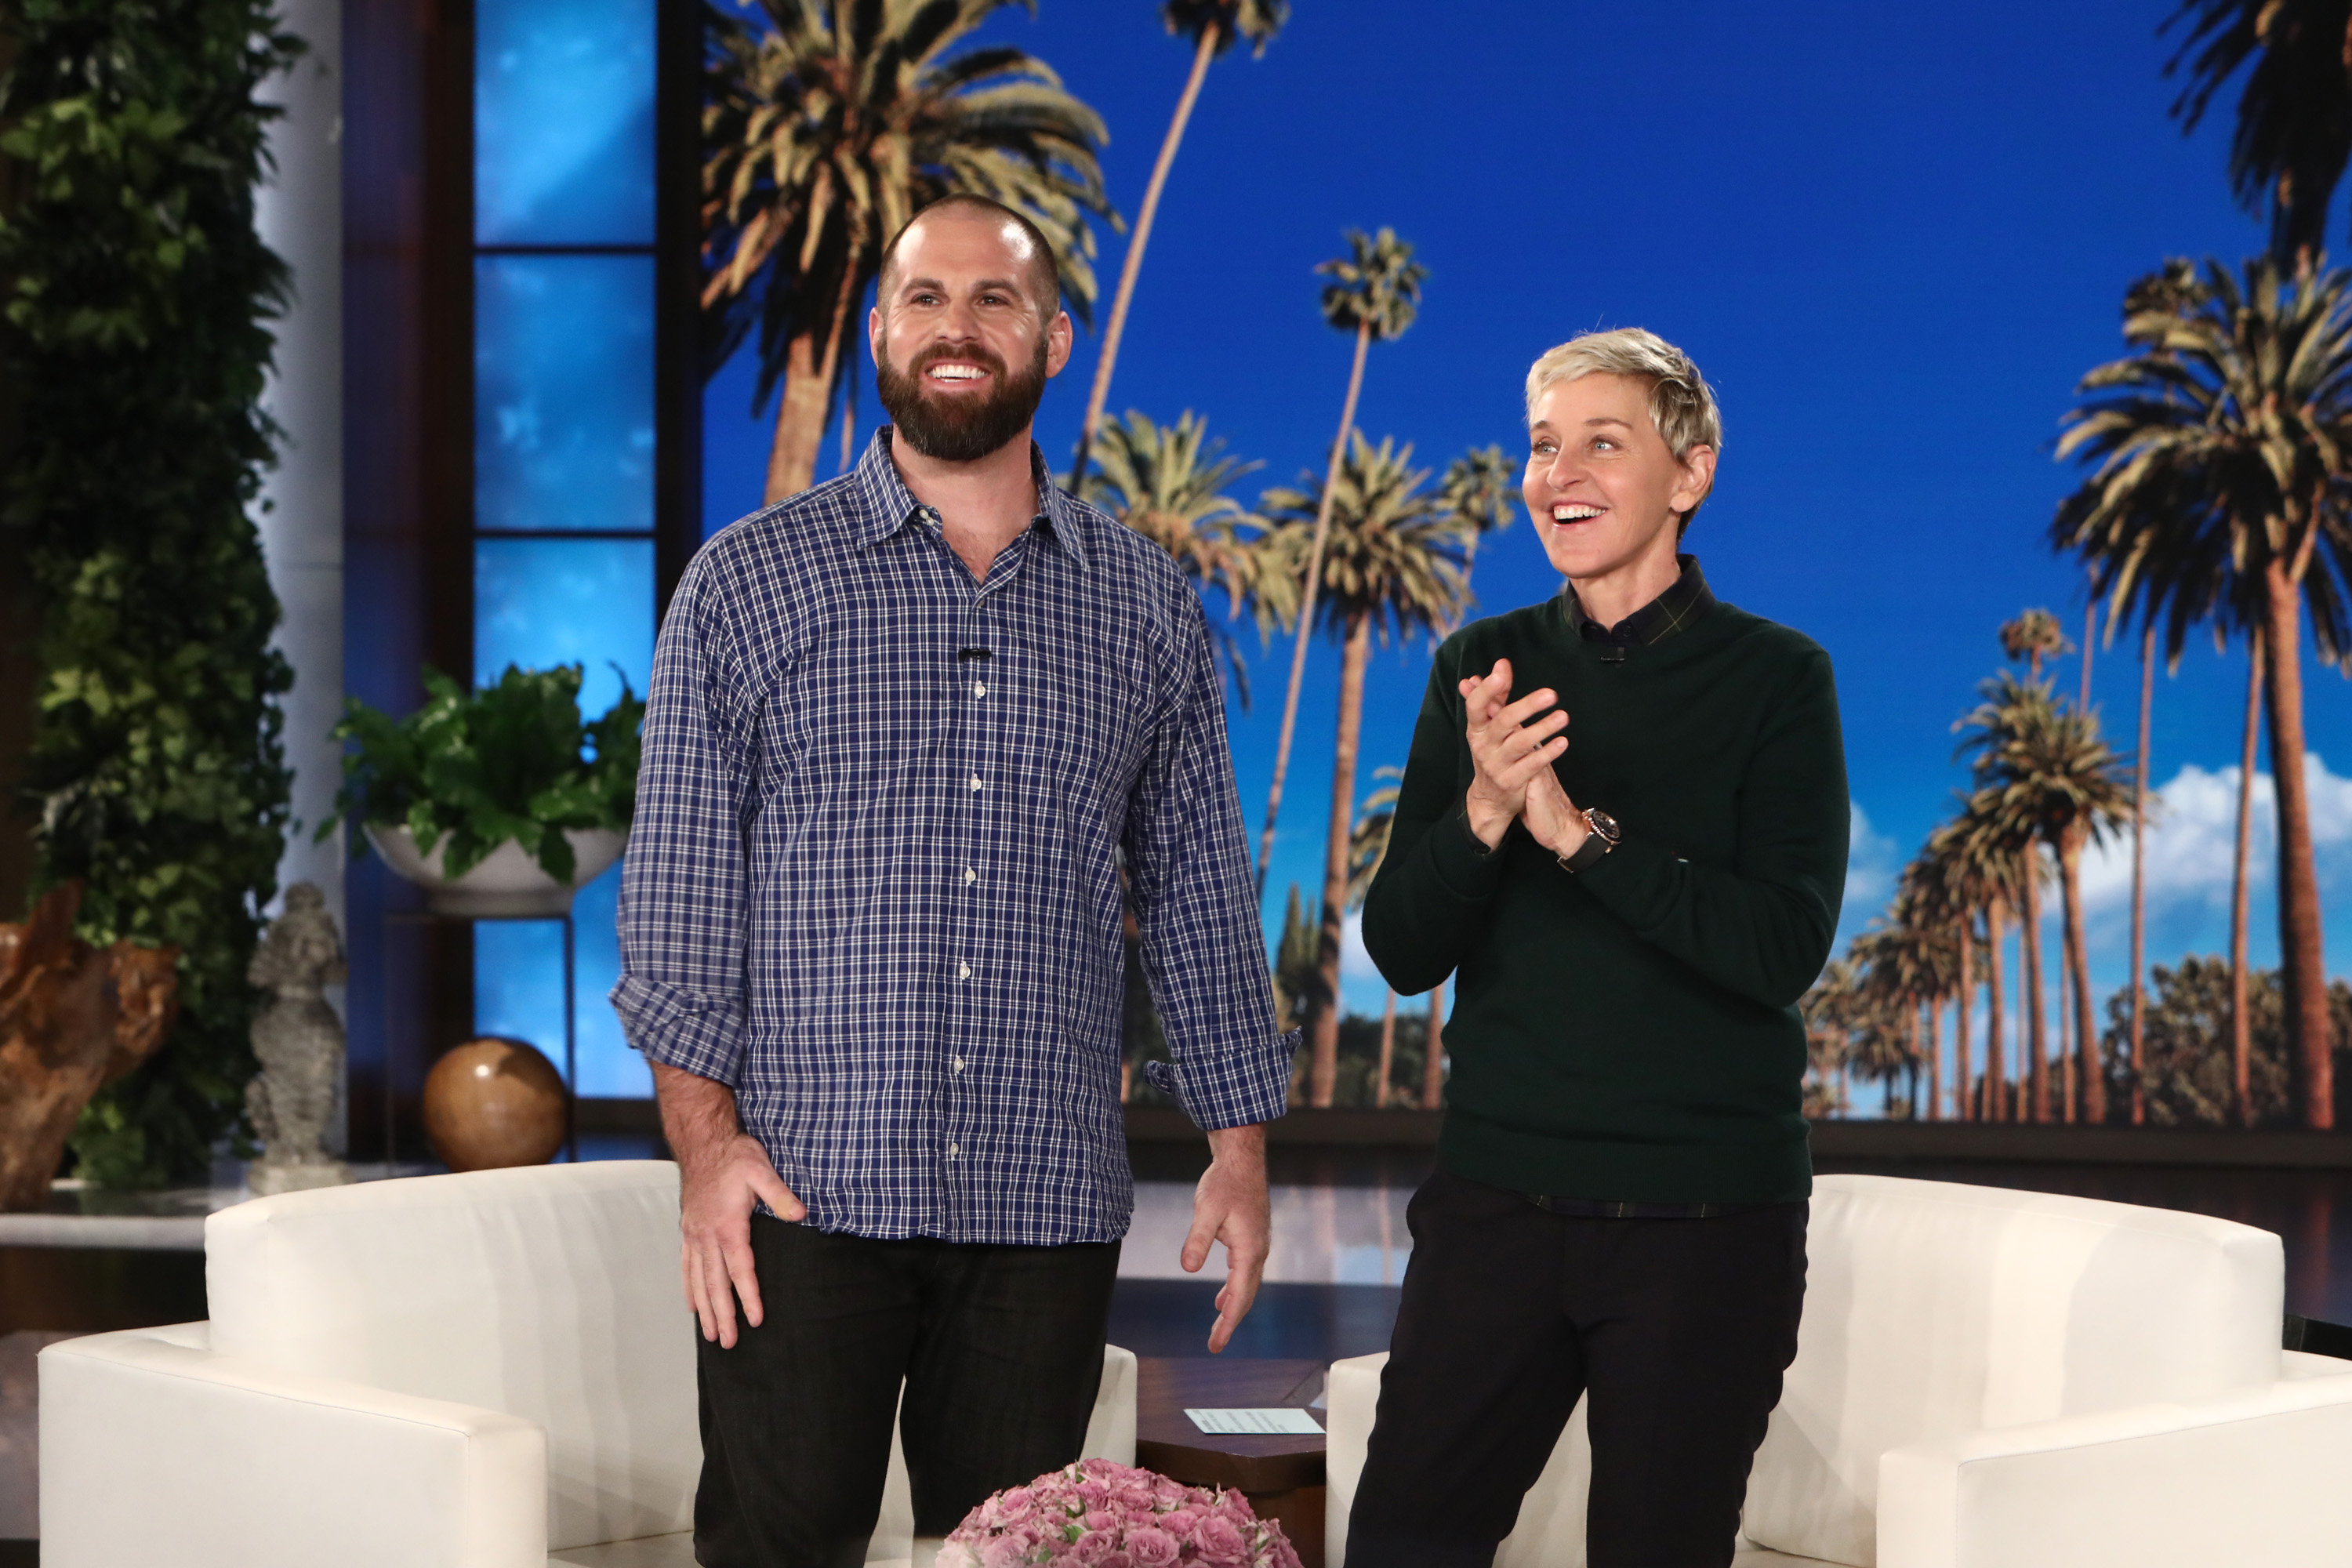 Watch Jon Dorenbos Perform on The TODAY Show